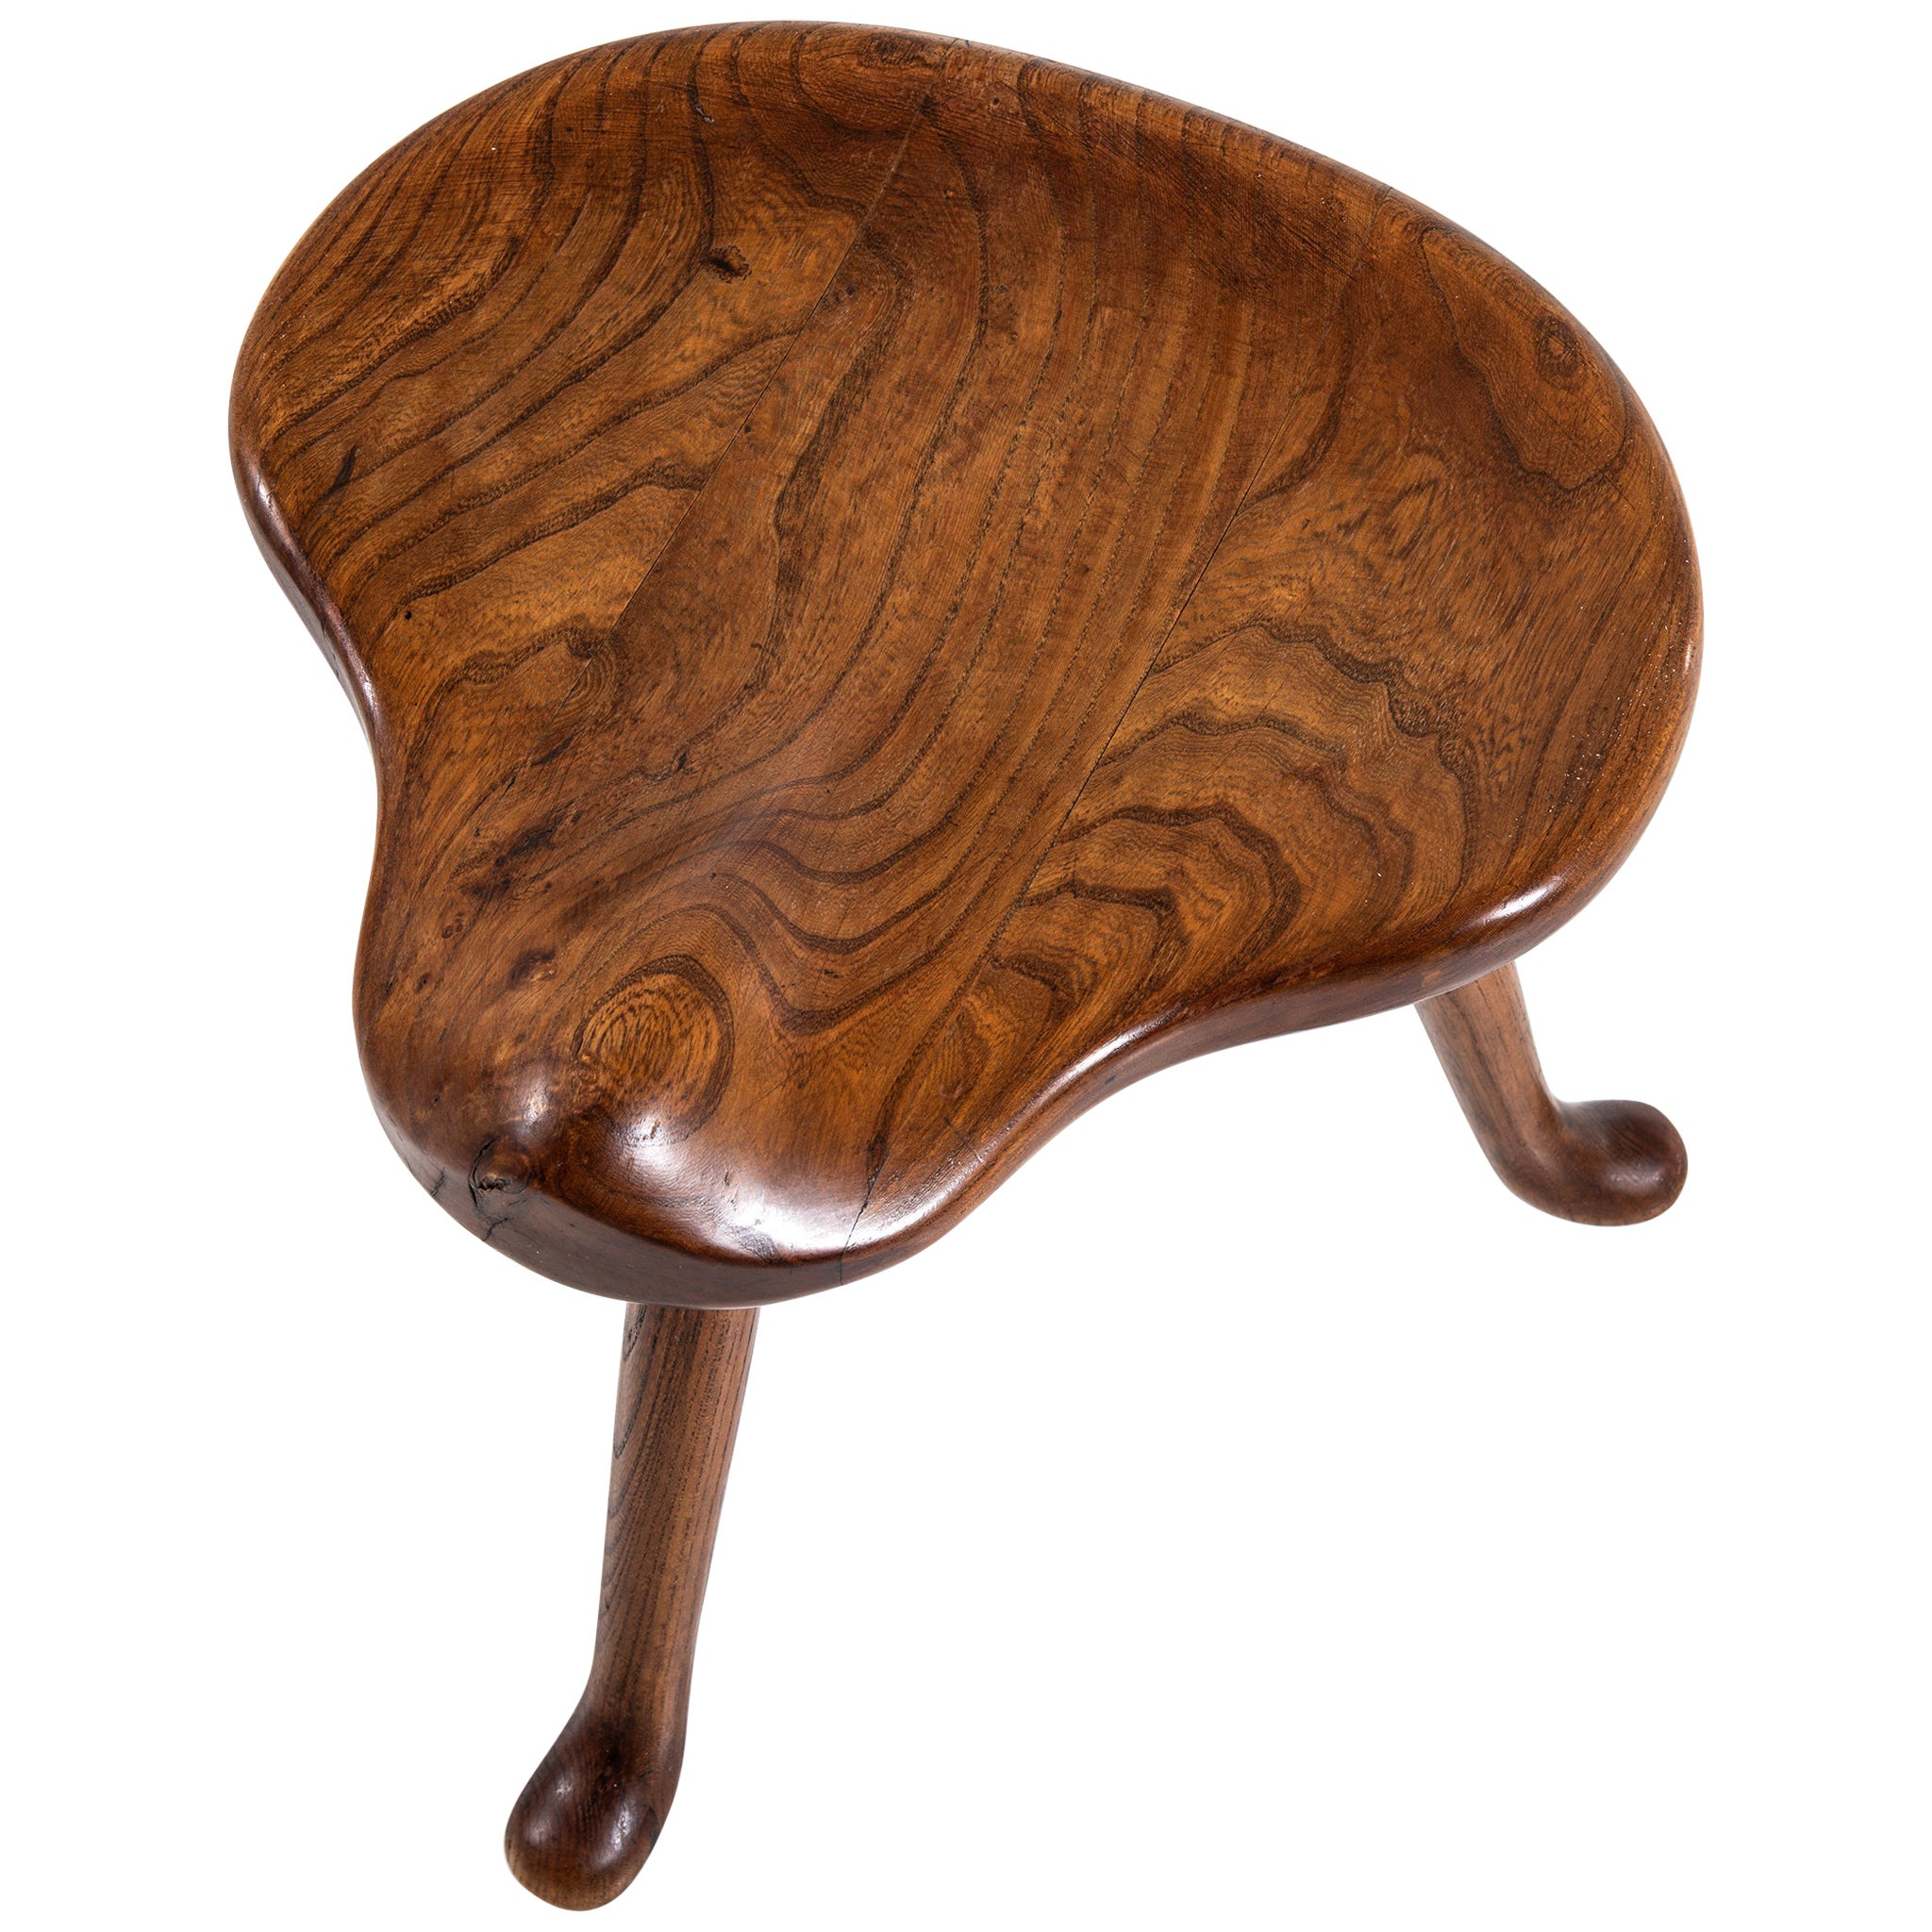 Josef Frank Stool in Oak Produced by Svenskt Tenn in Sweden